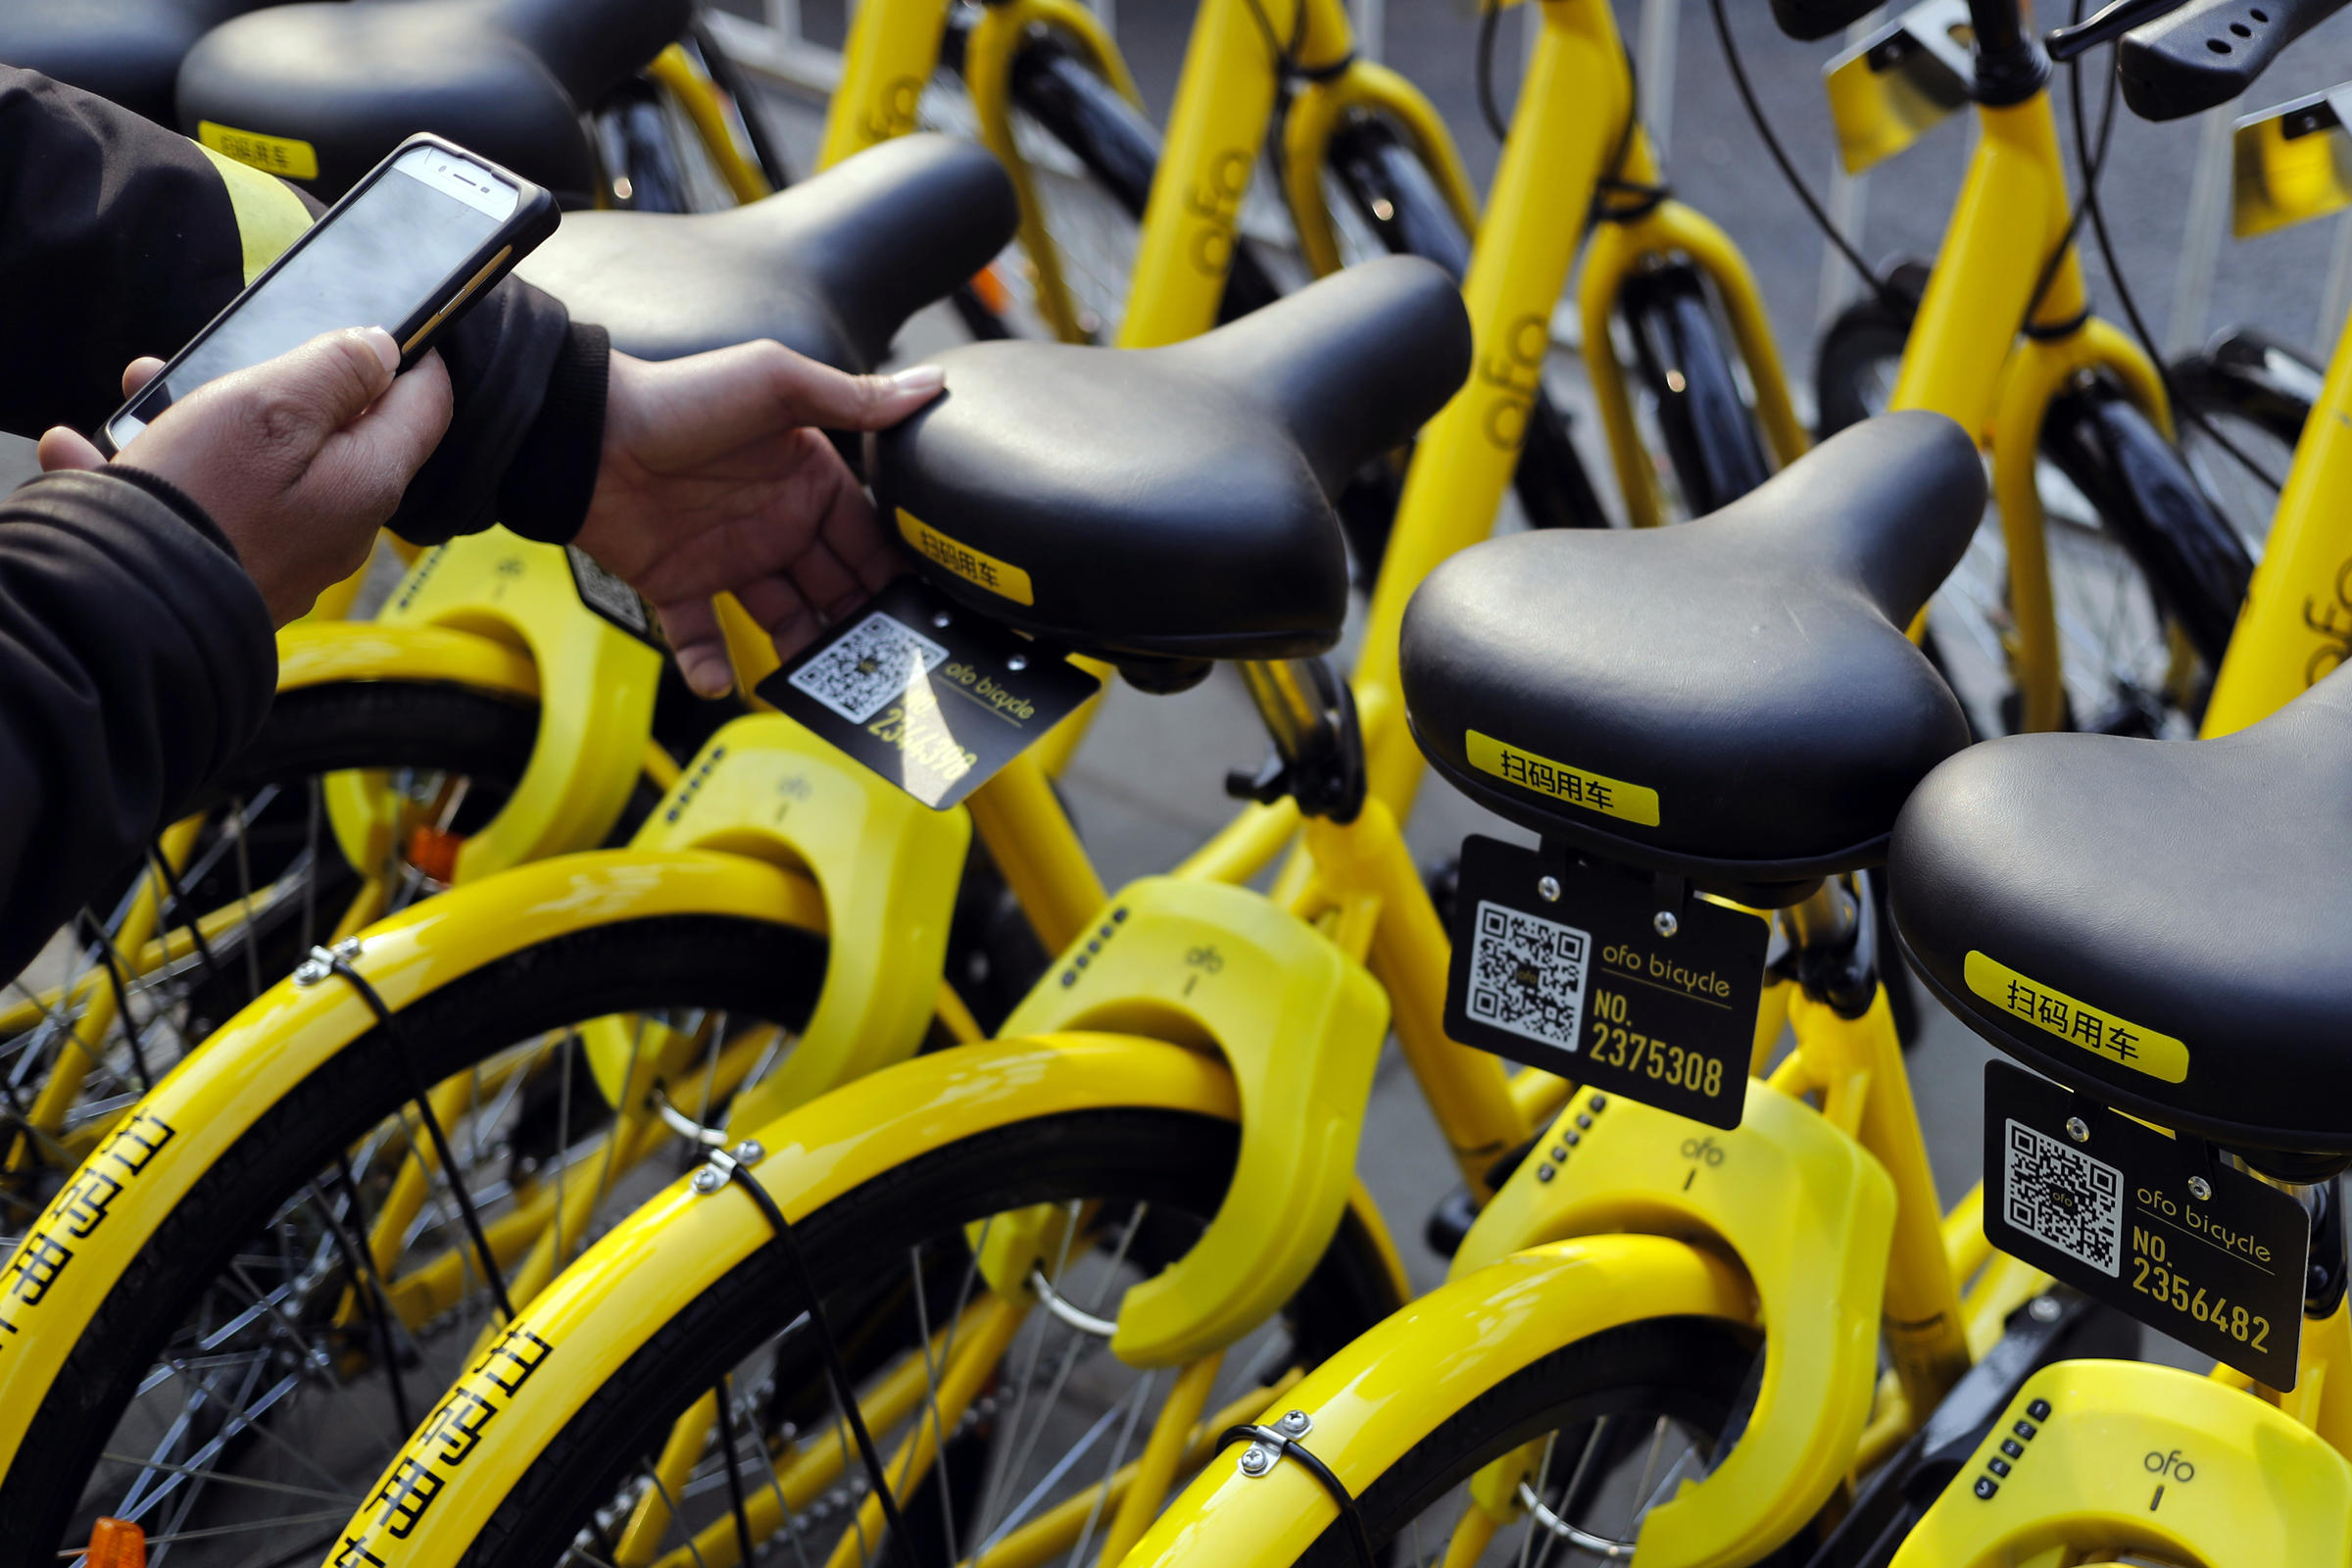 How to Unlock an Ofo Bike How to Unlock an Ofo Bike new picture